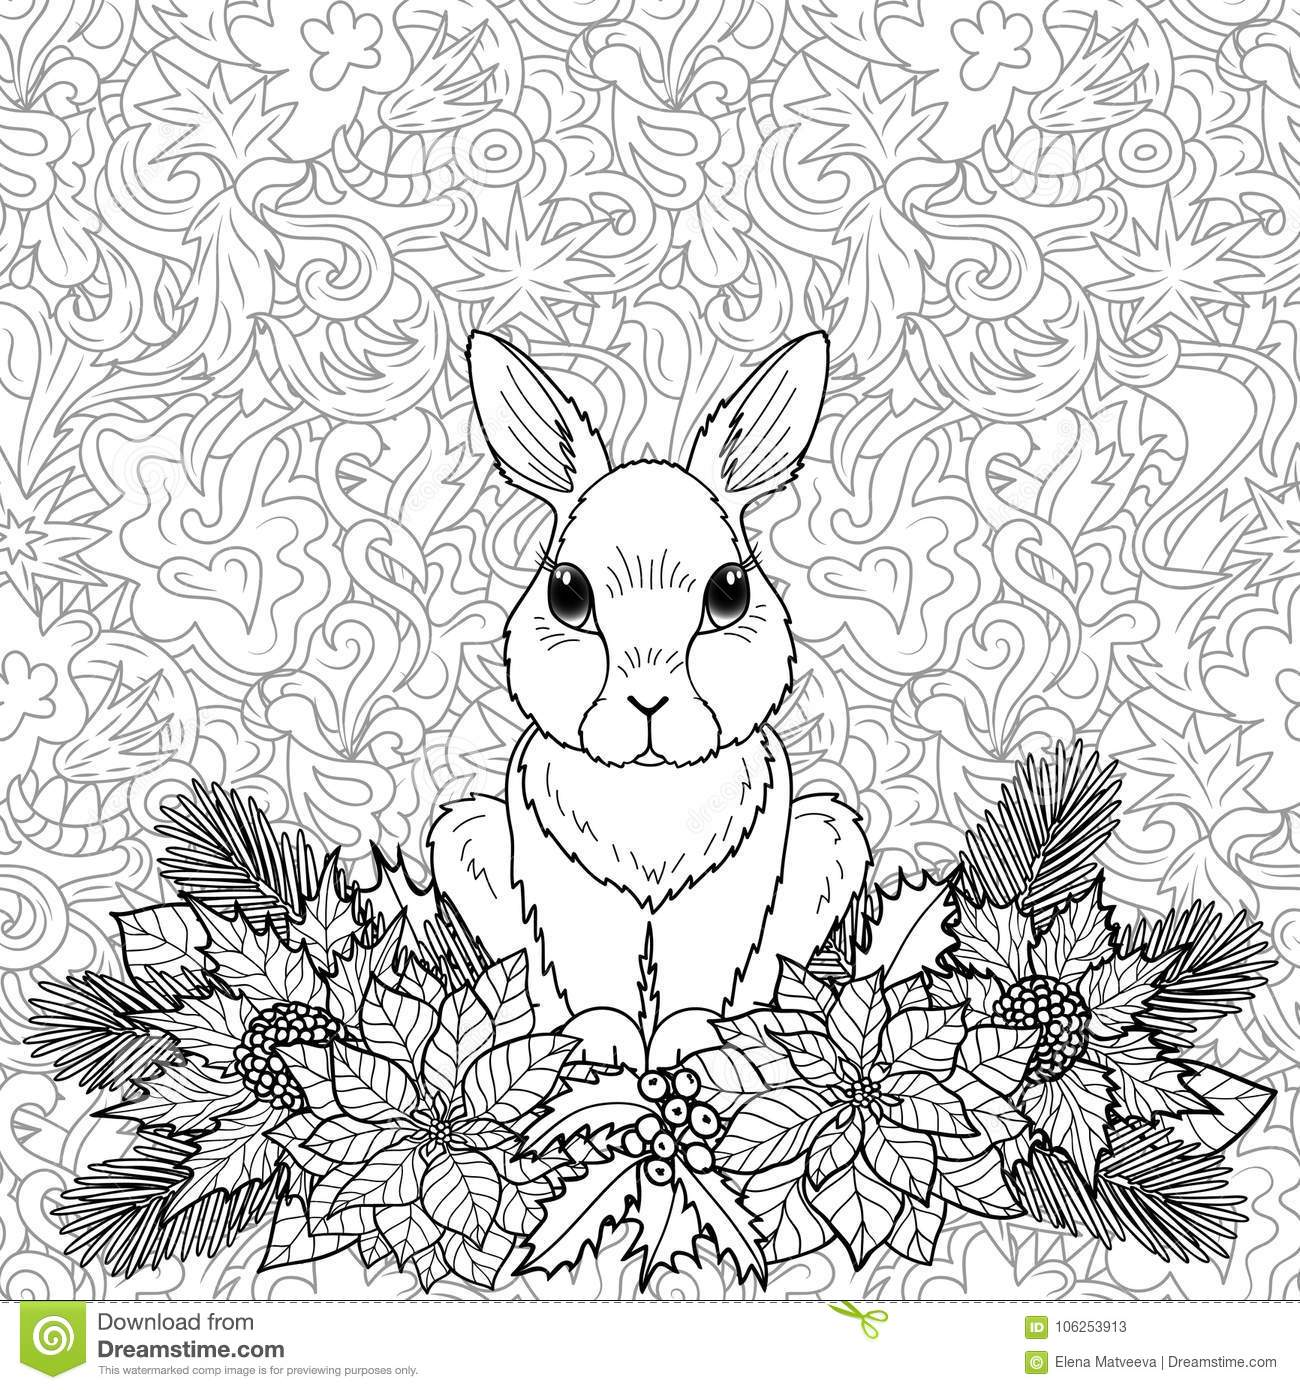 Winter Coloring Page With Rabbit Stock Vector - Illustration of